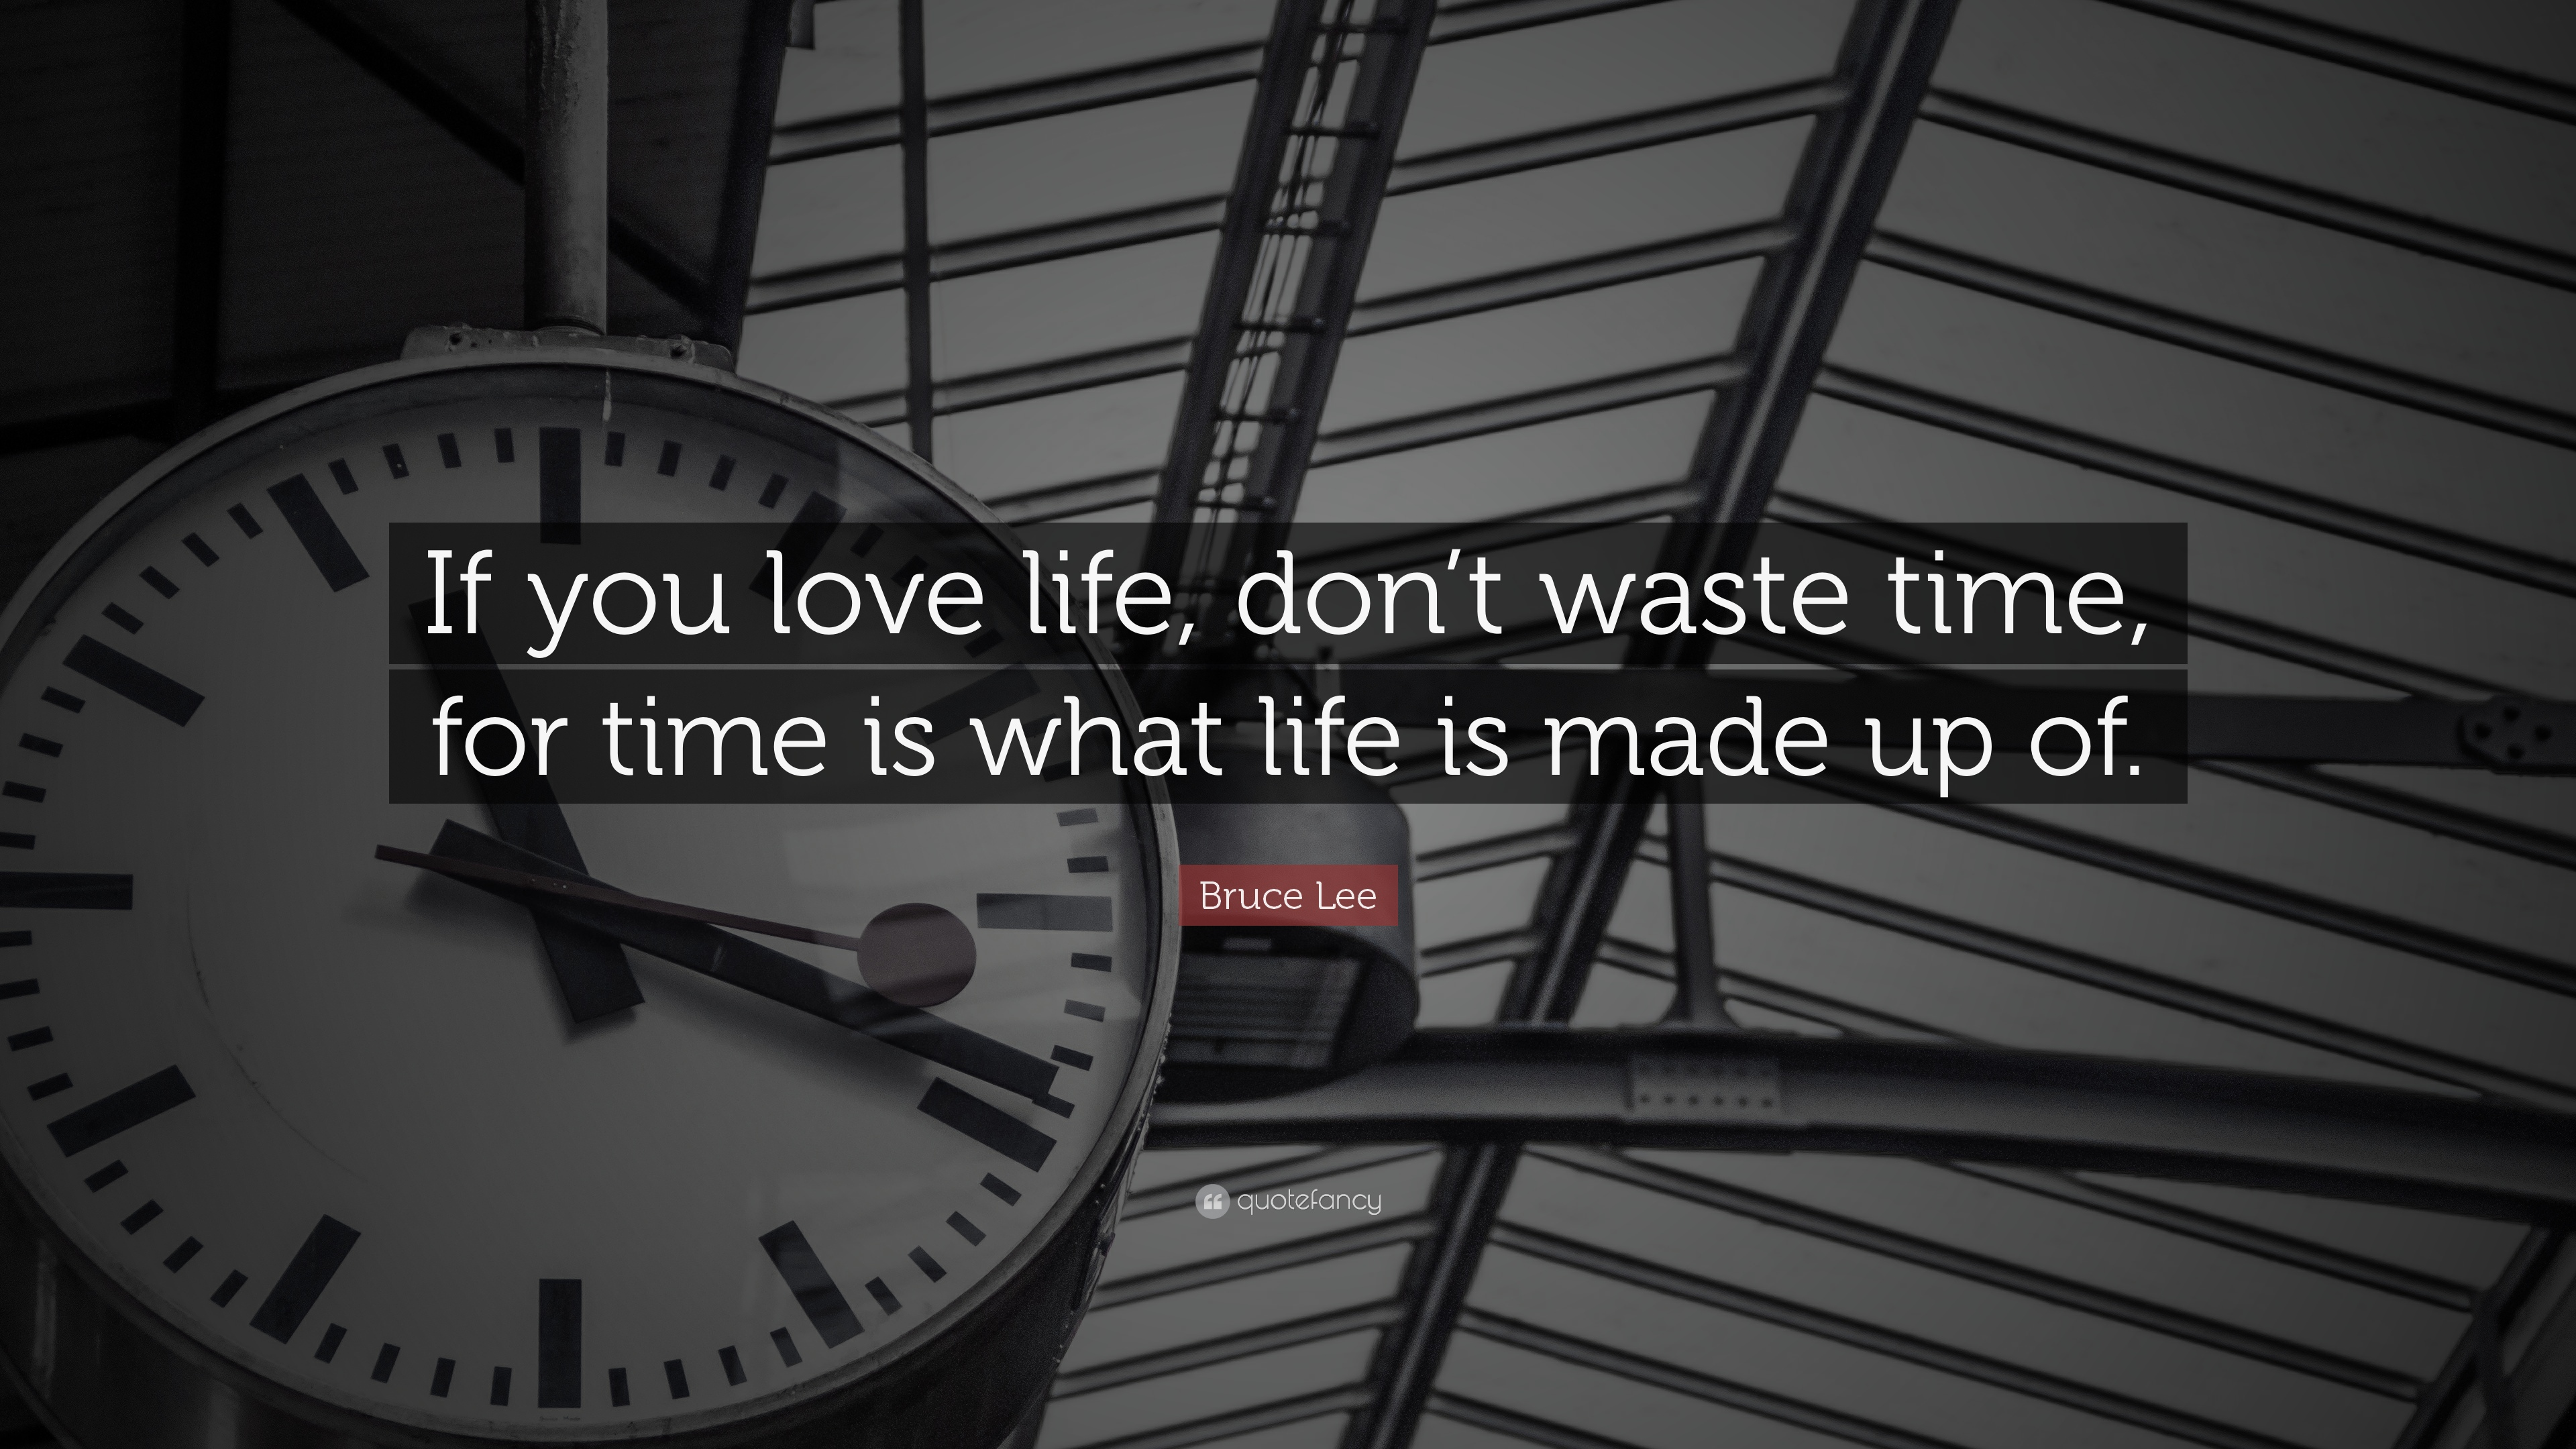 Bruce Lee Quote: U201cIf You Love Life, Donu0027t Waste Time,